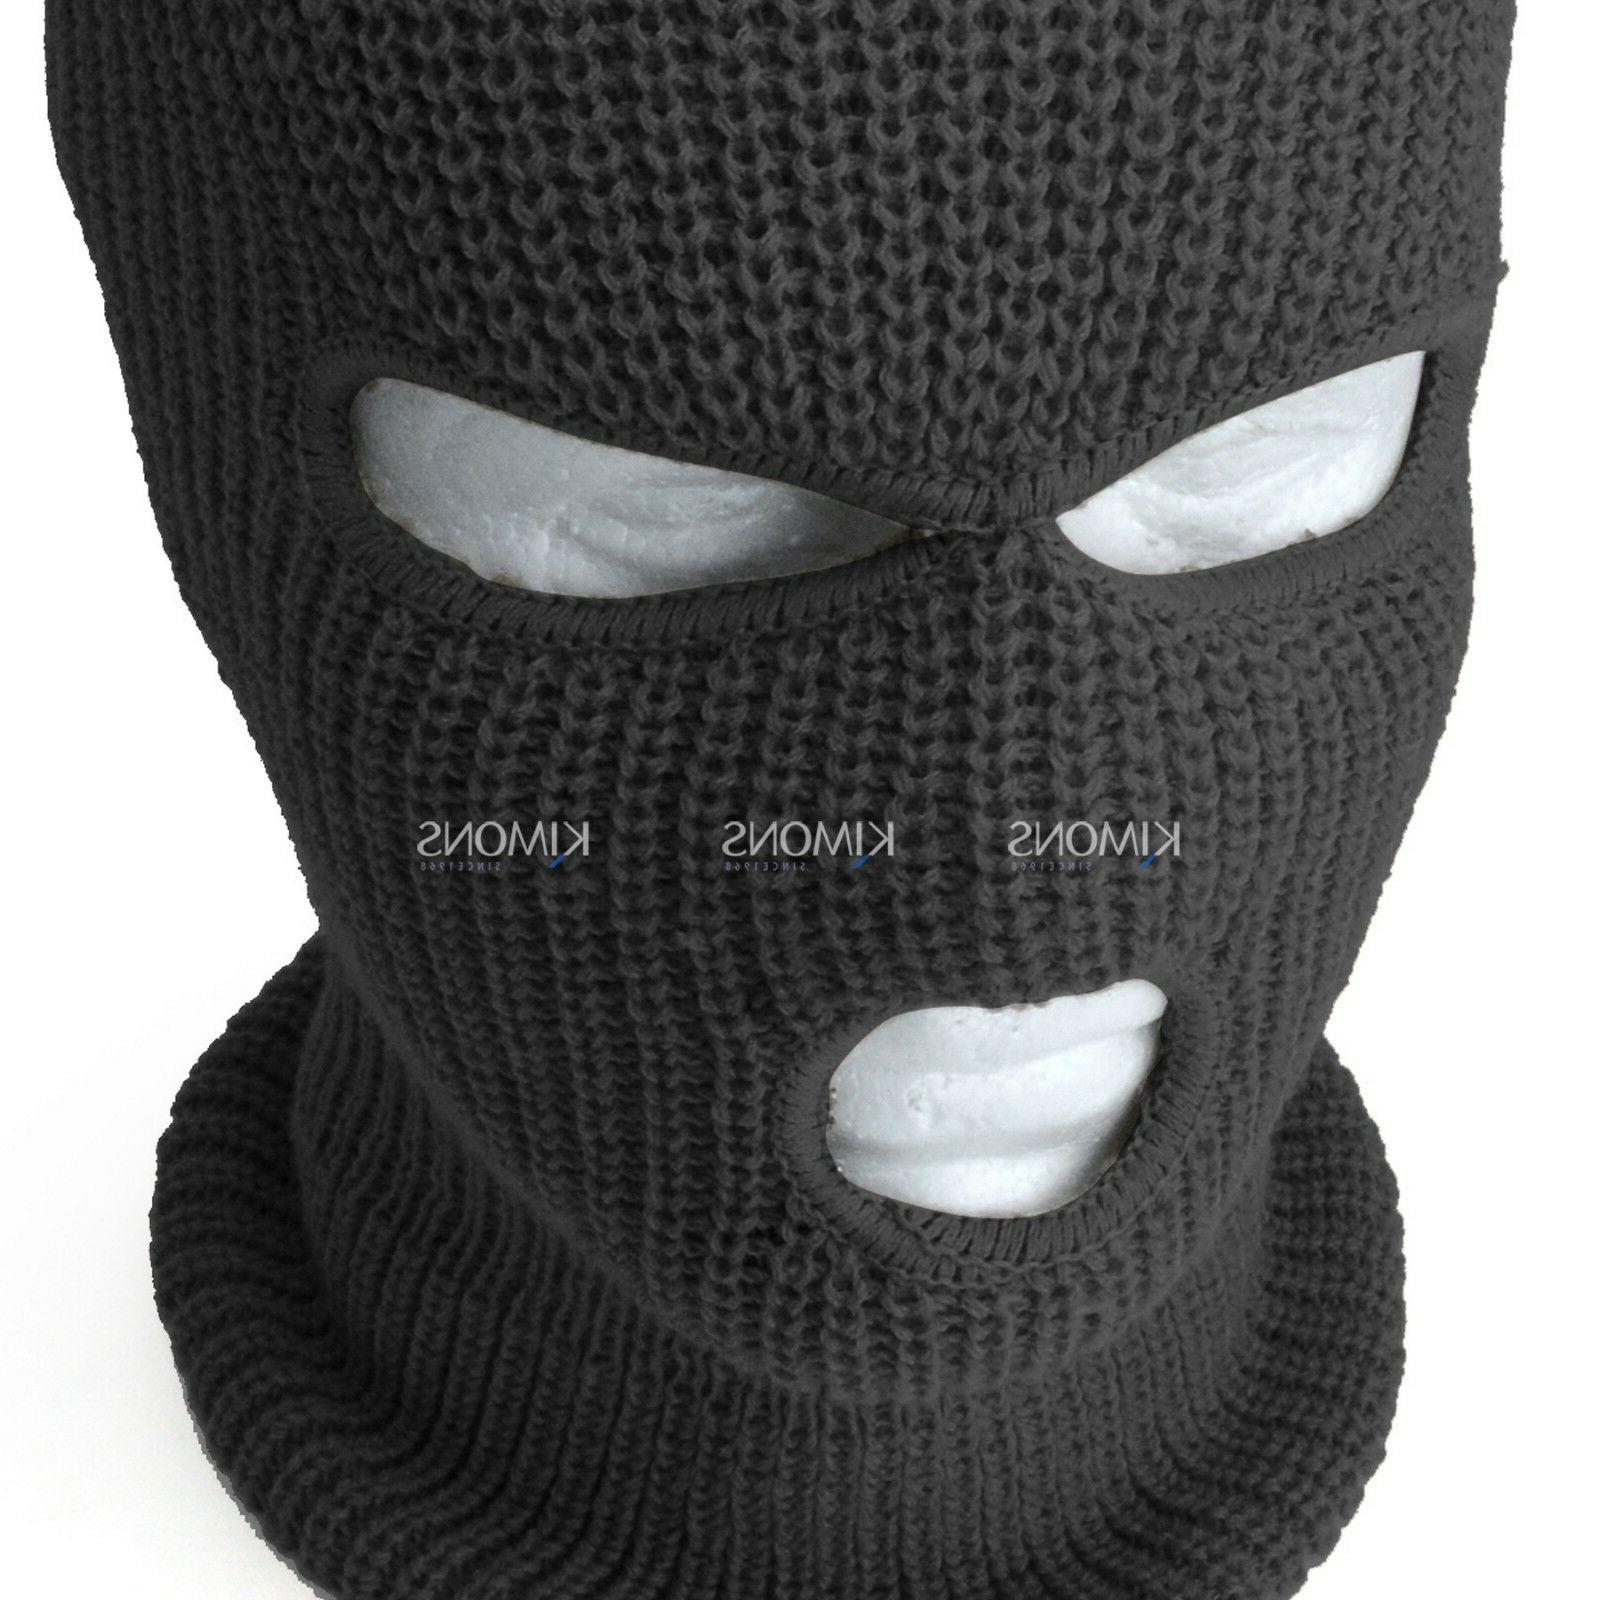 3 Hole Full Mask Cap Balaclava Outdoor Tactical